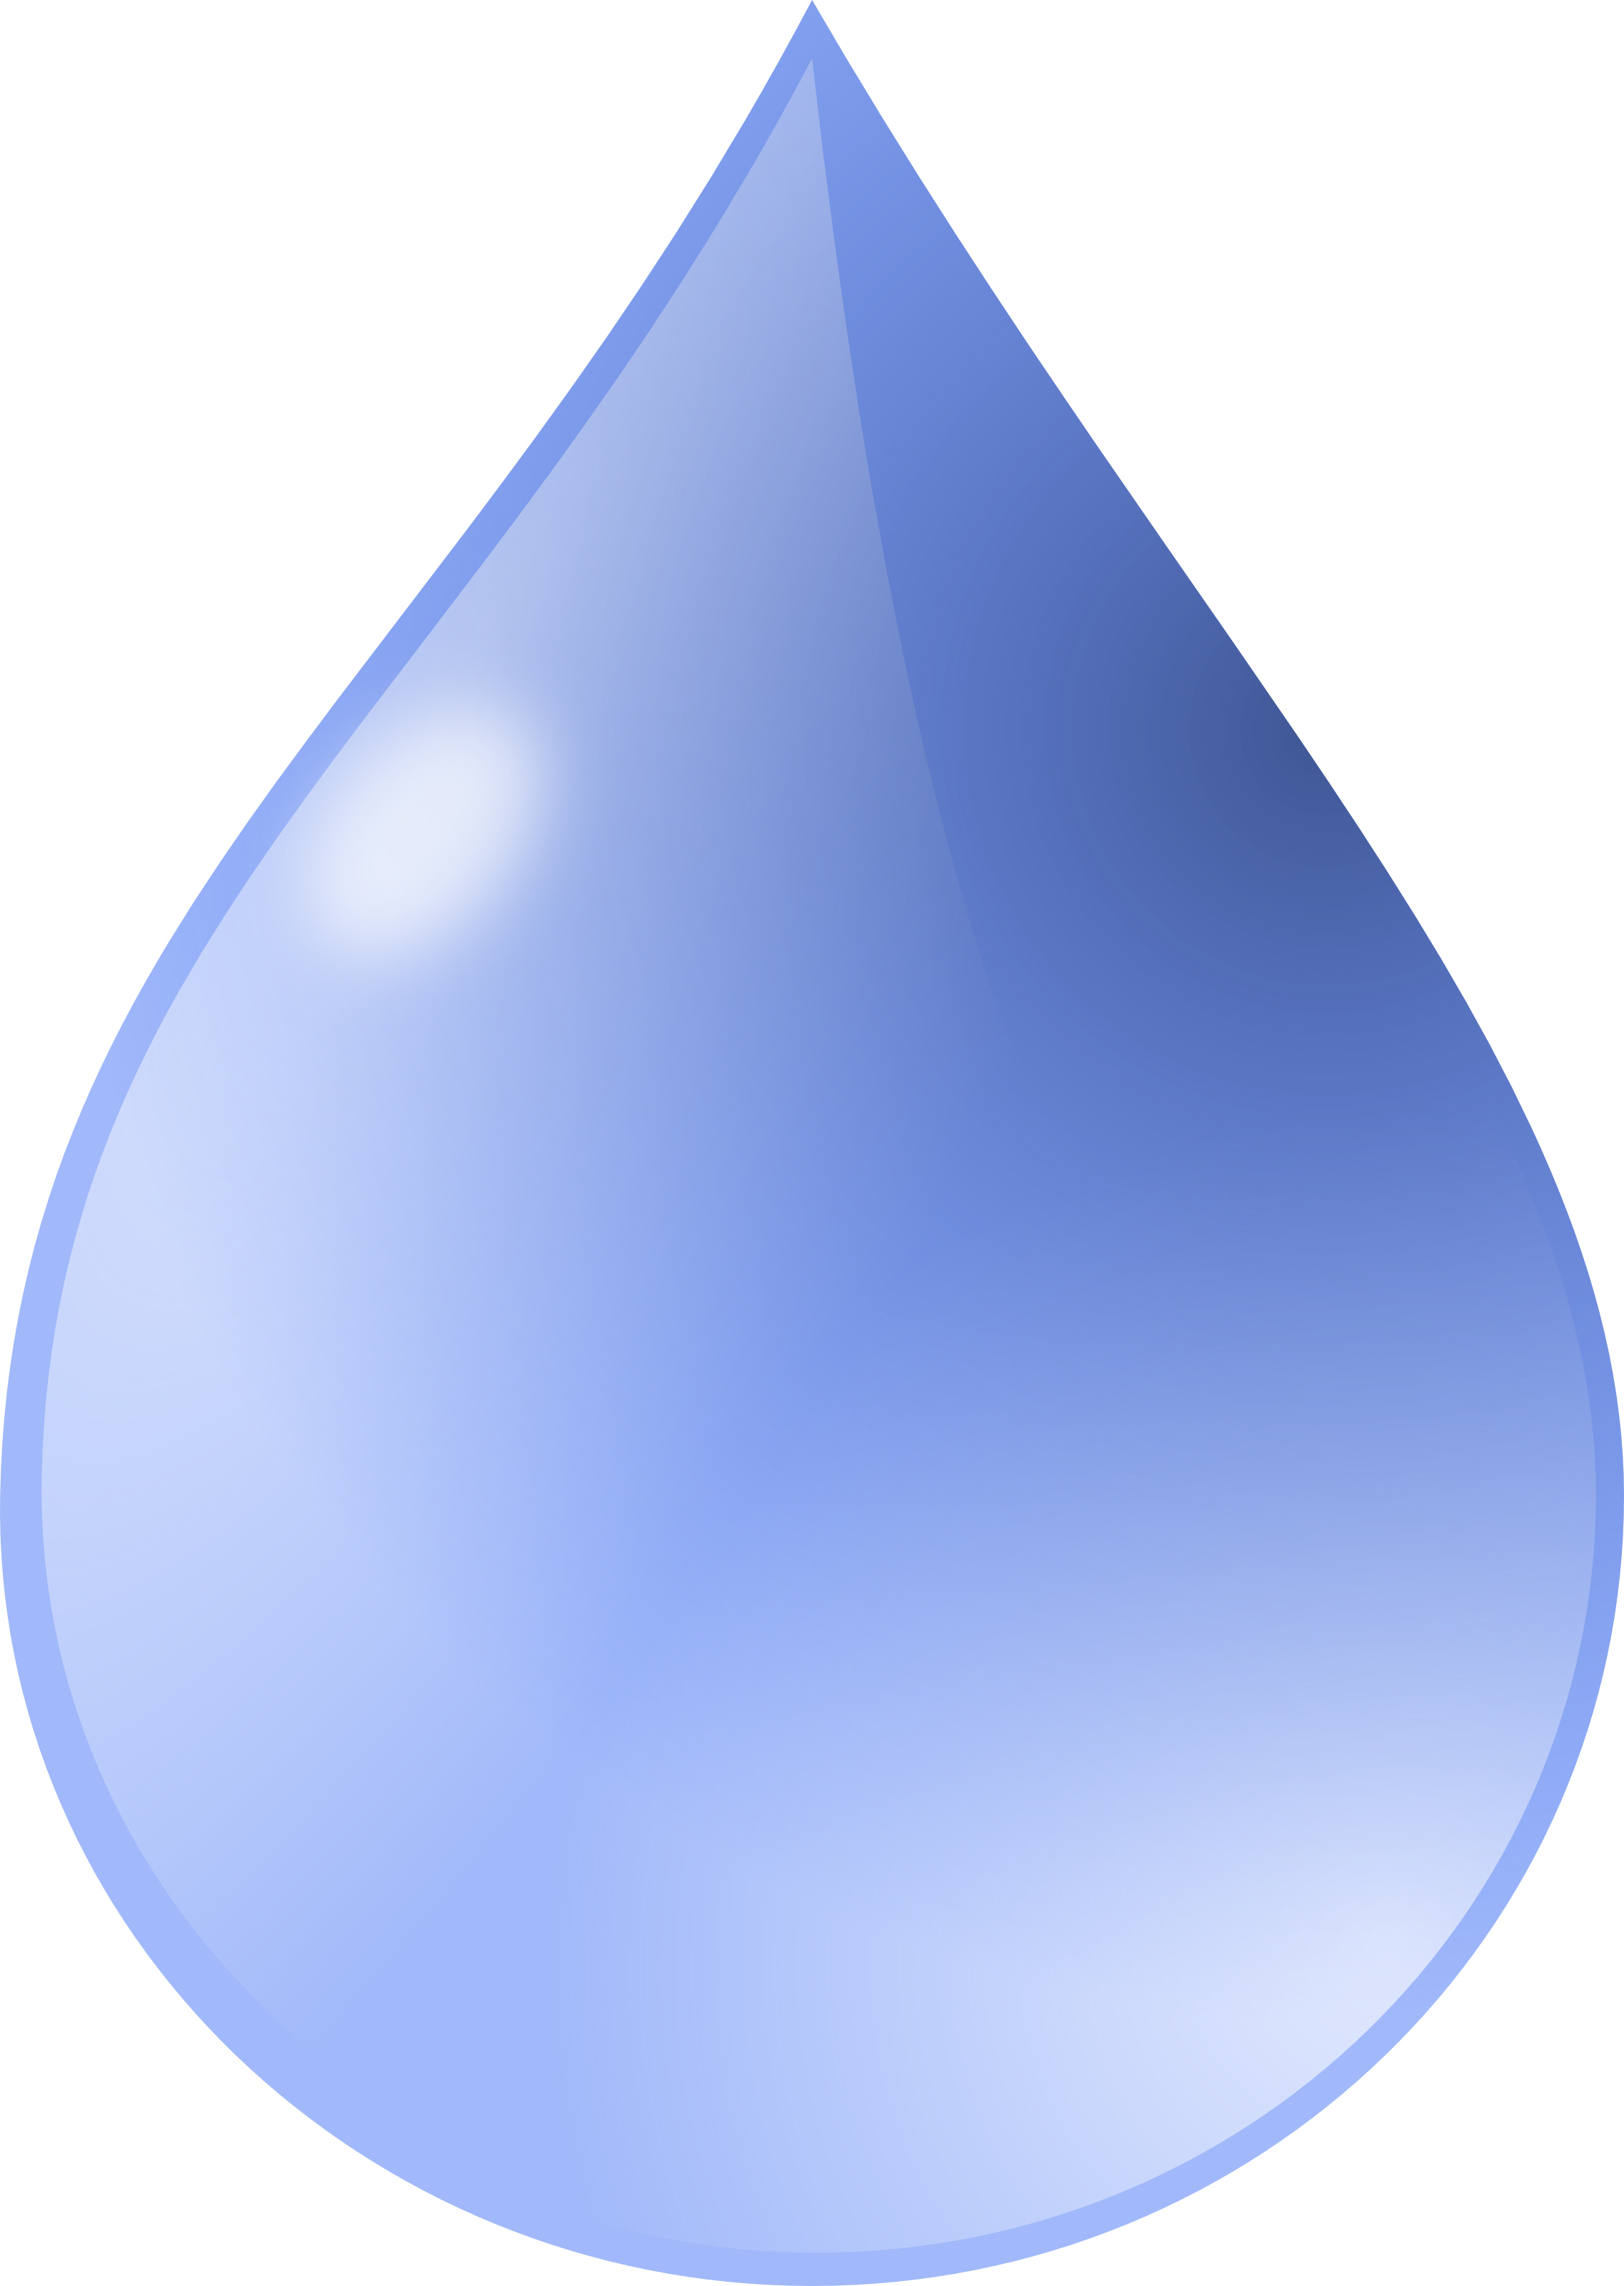 Free Water Drop Clipart Illustration By -Free Water Drop Clipart Illustration by 000162 .-1